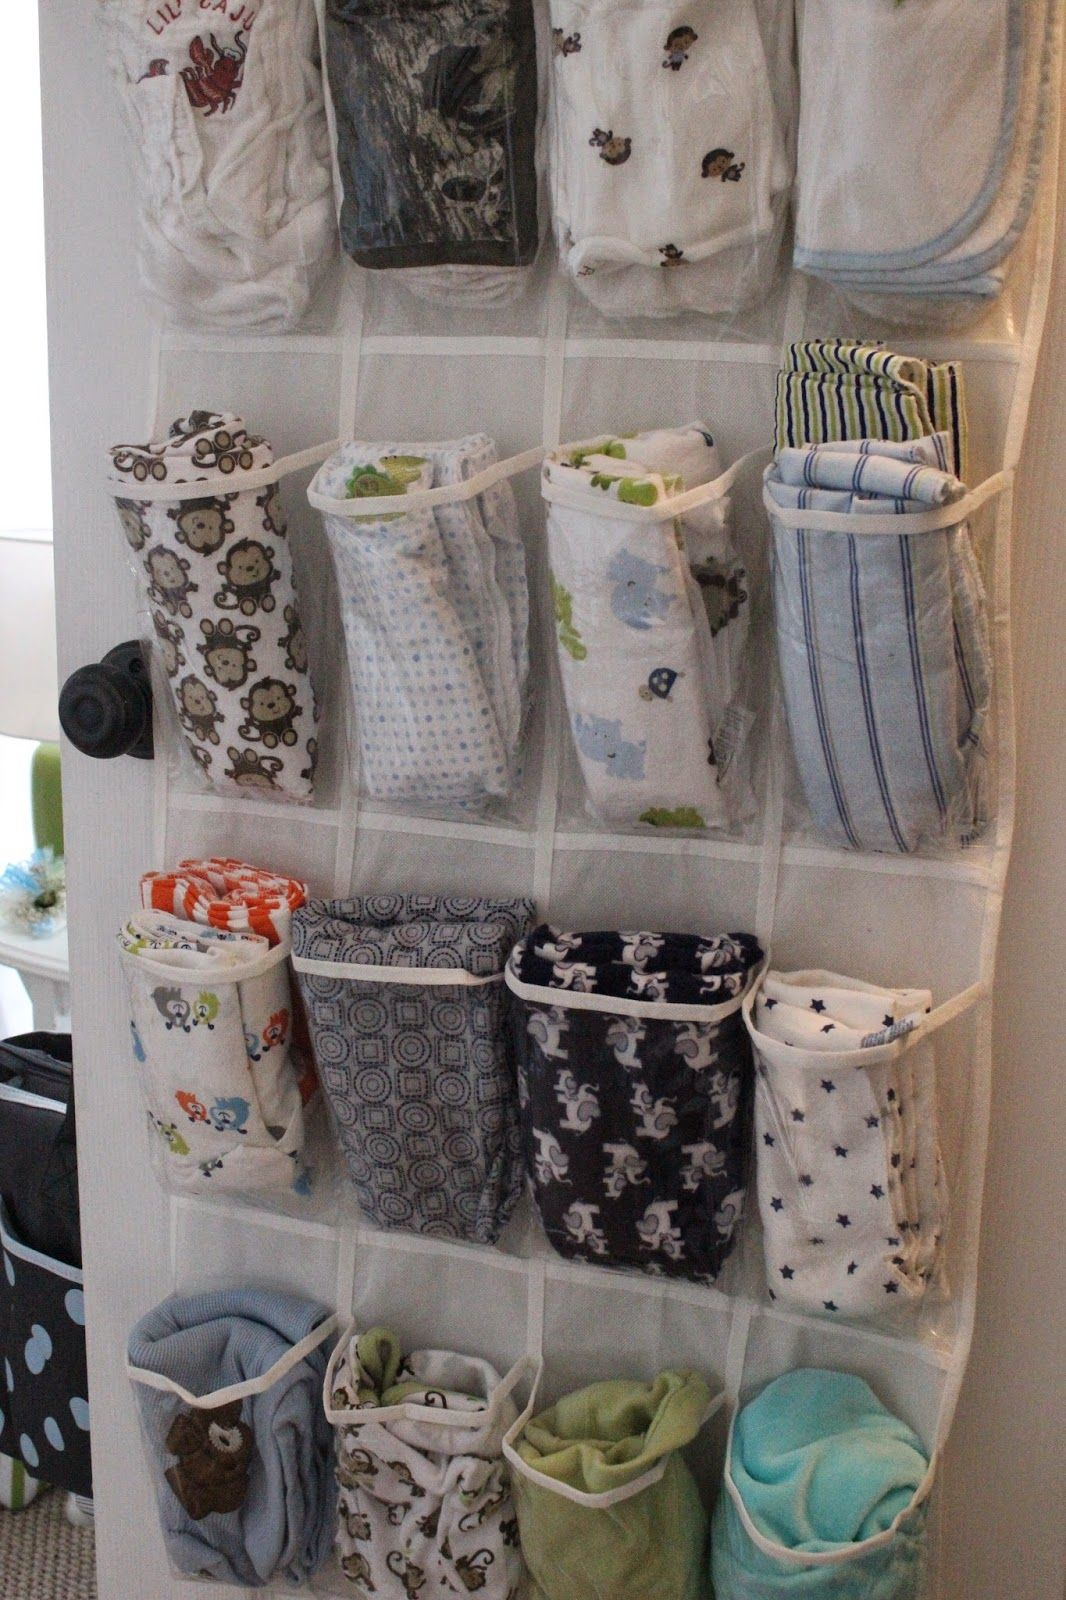 Nursery Organization Ideas How To Organize Your Nursery Using These 10 Tips How To Organize And Store Baby Baby Organization Baby Storage New Baby Products